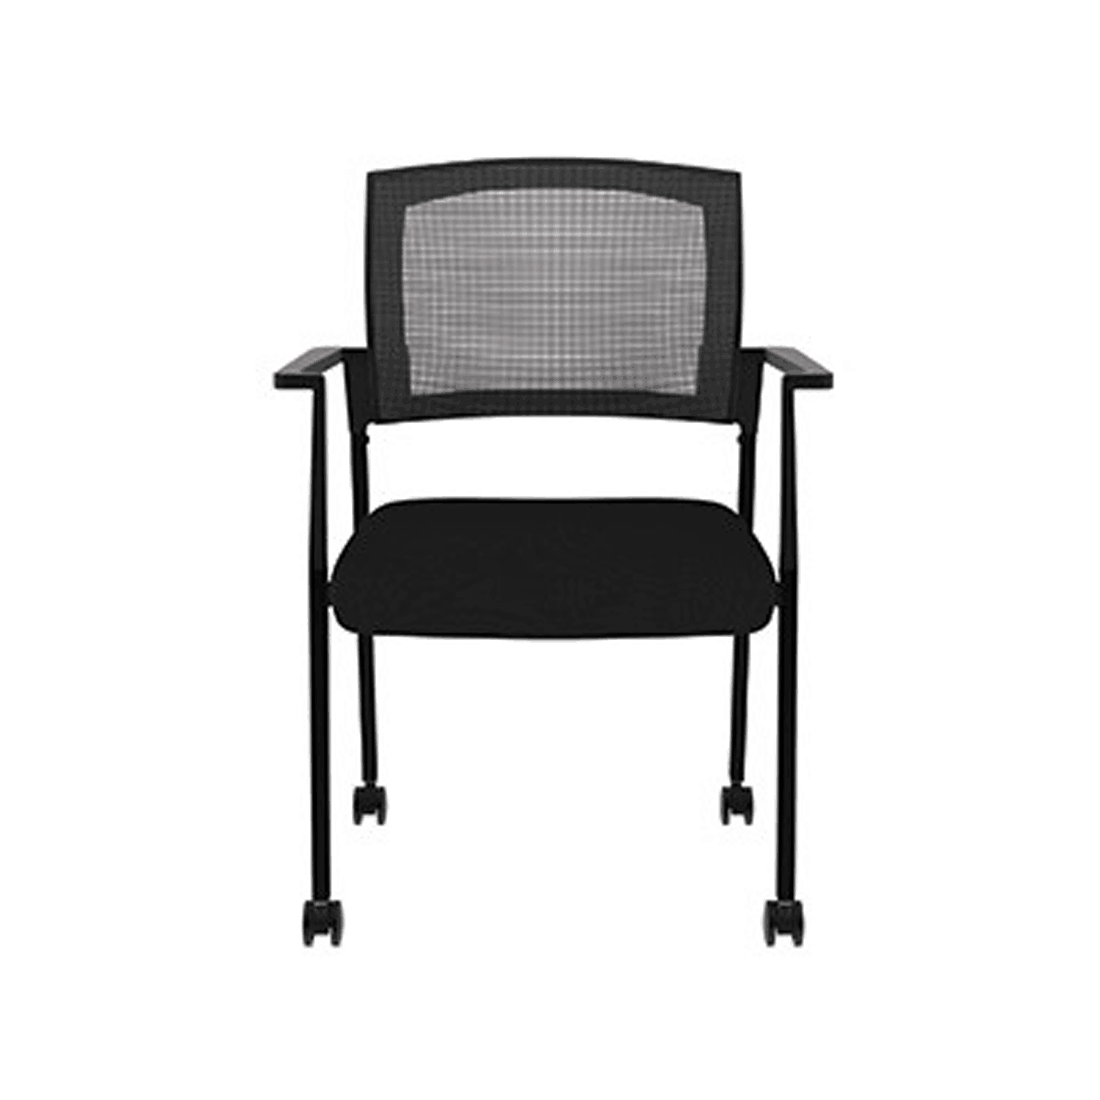 Conference Room Office Chairs & Seating For Sale | Joyce Contract